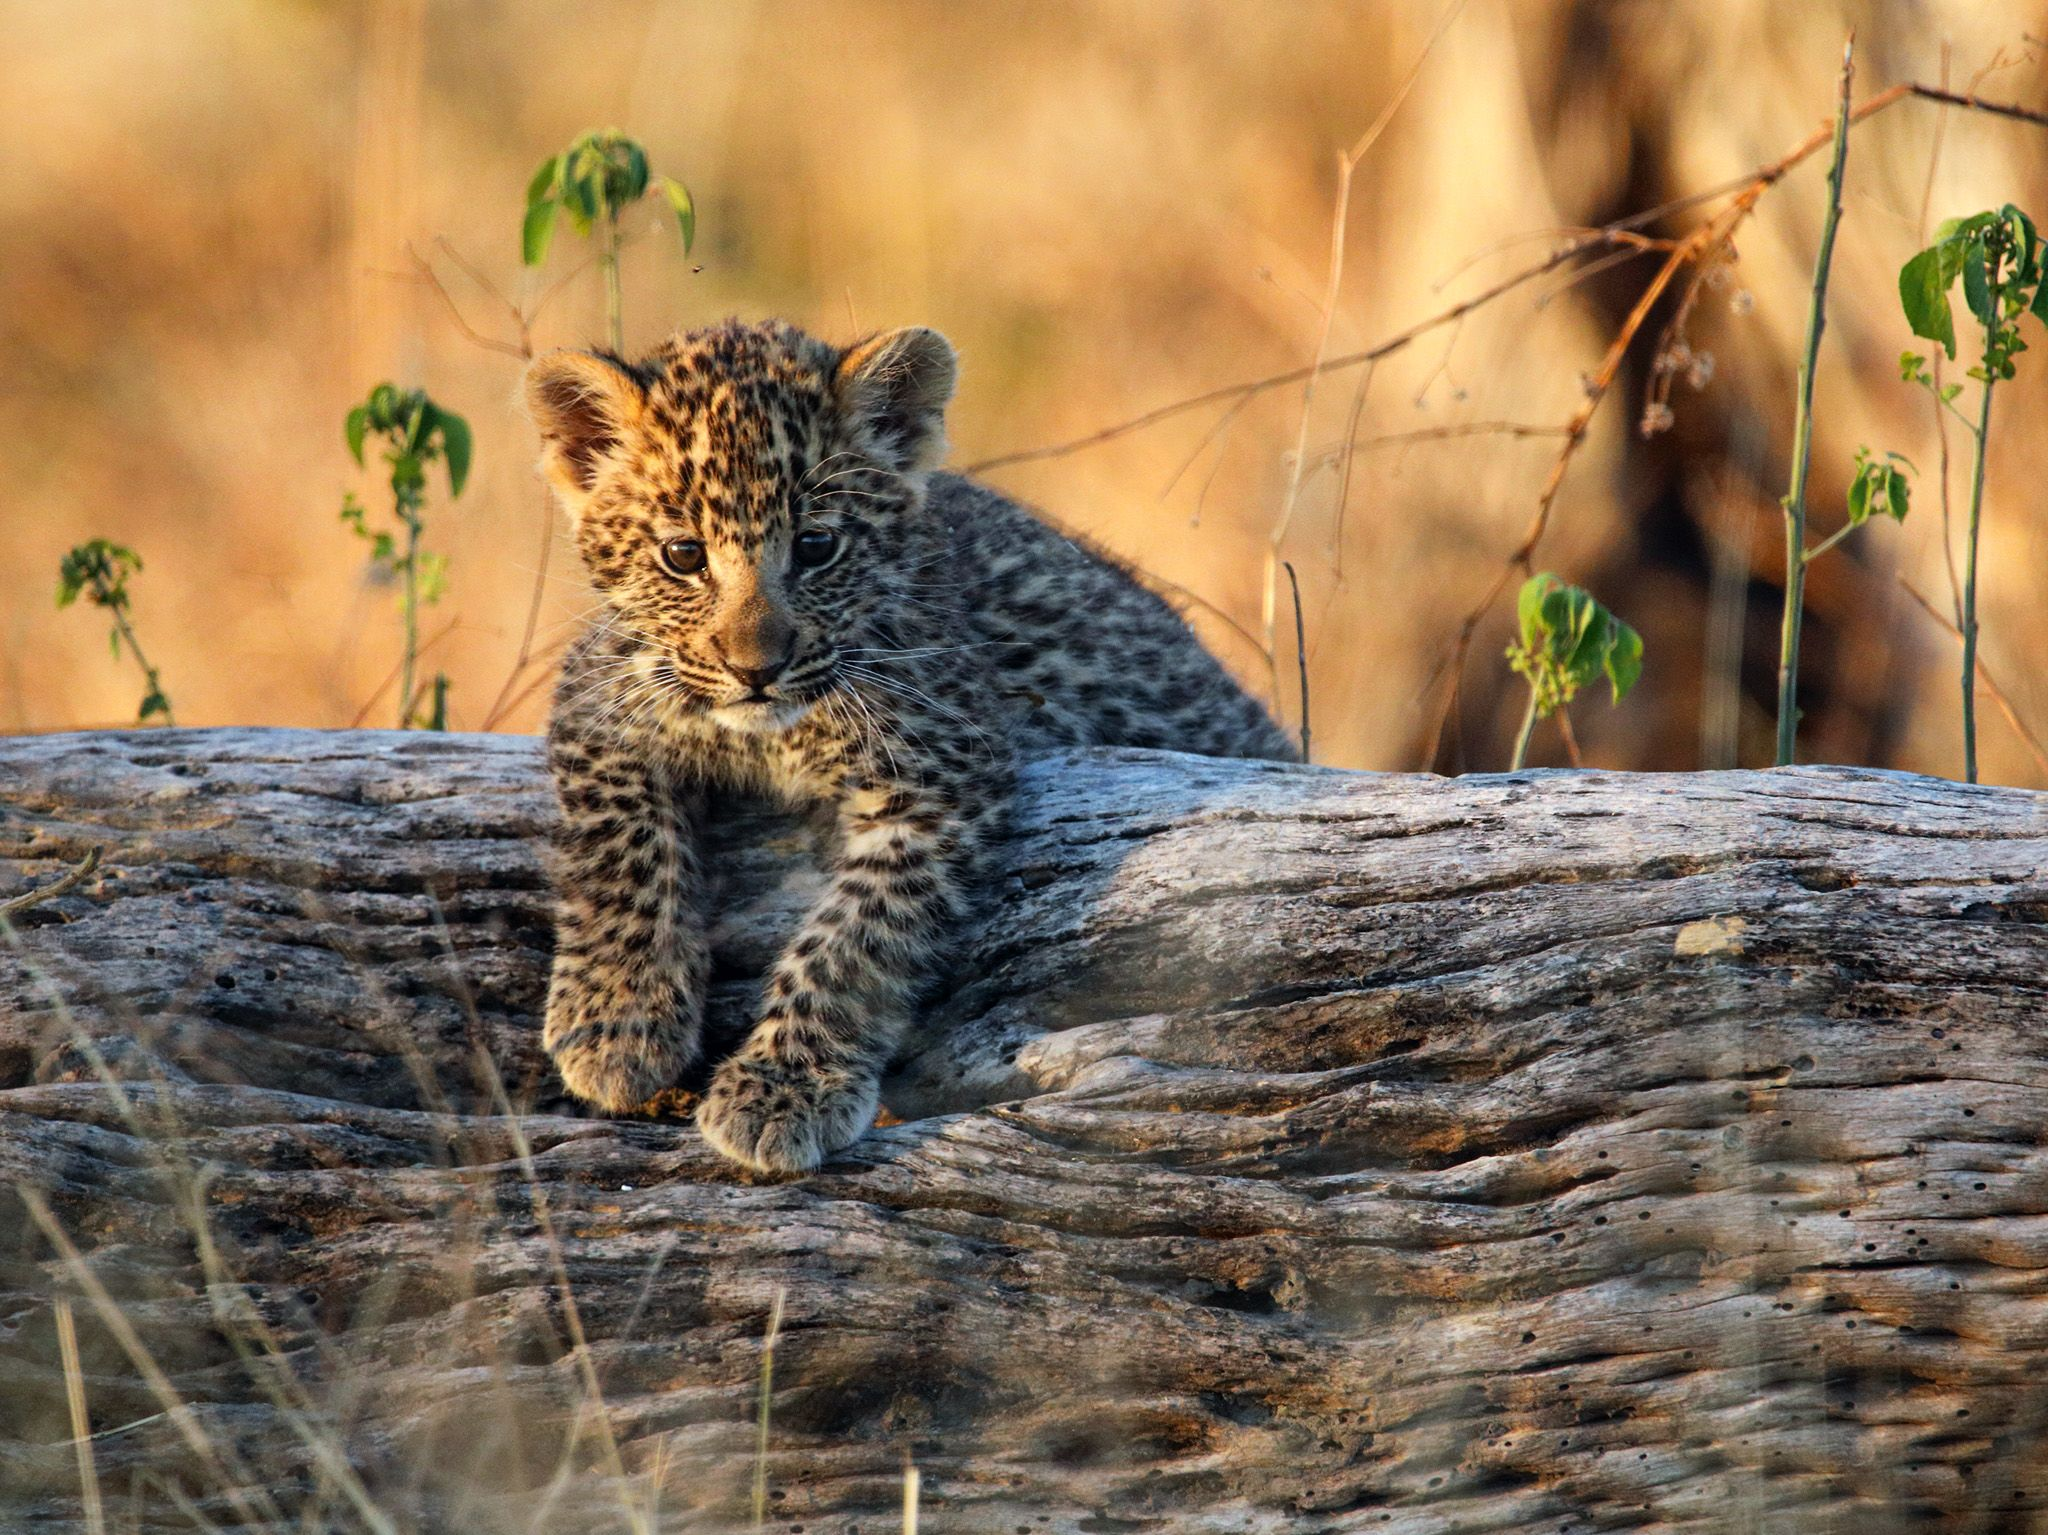 Botswana:  A young Leopard cub lies spread out on its den site; a fallen hollow tree. This image... [Photo of the day - November 2018]